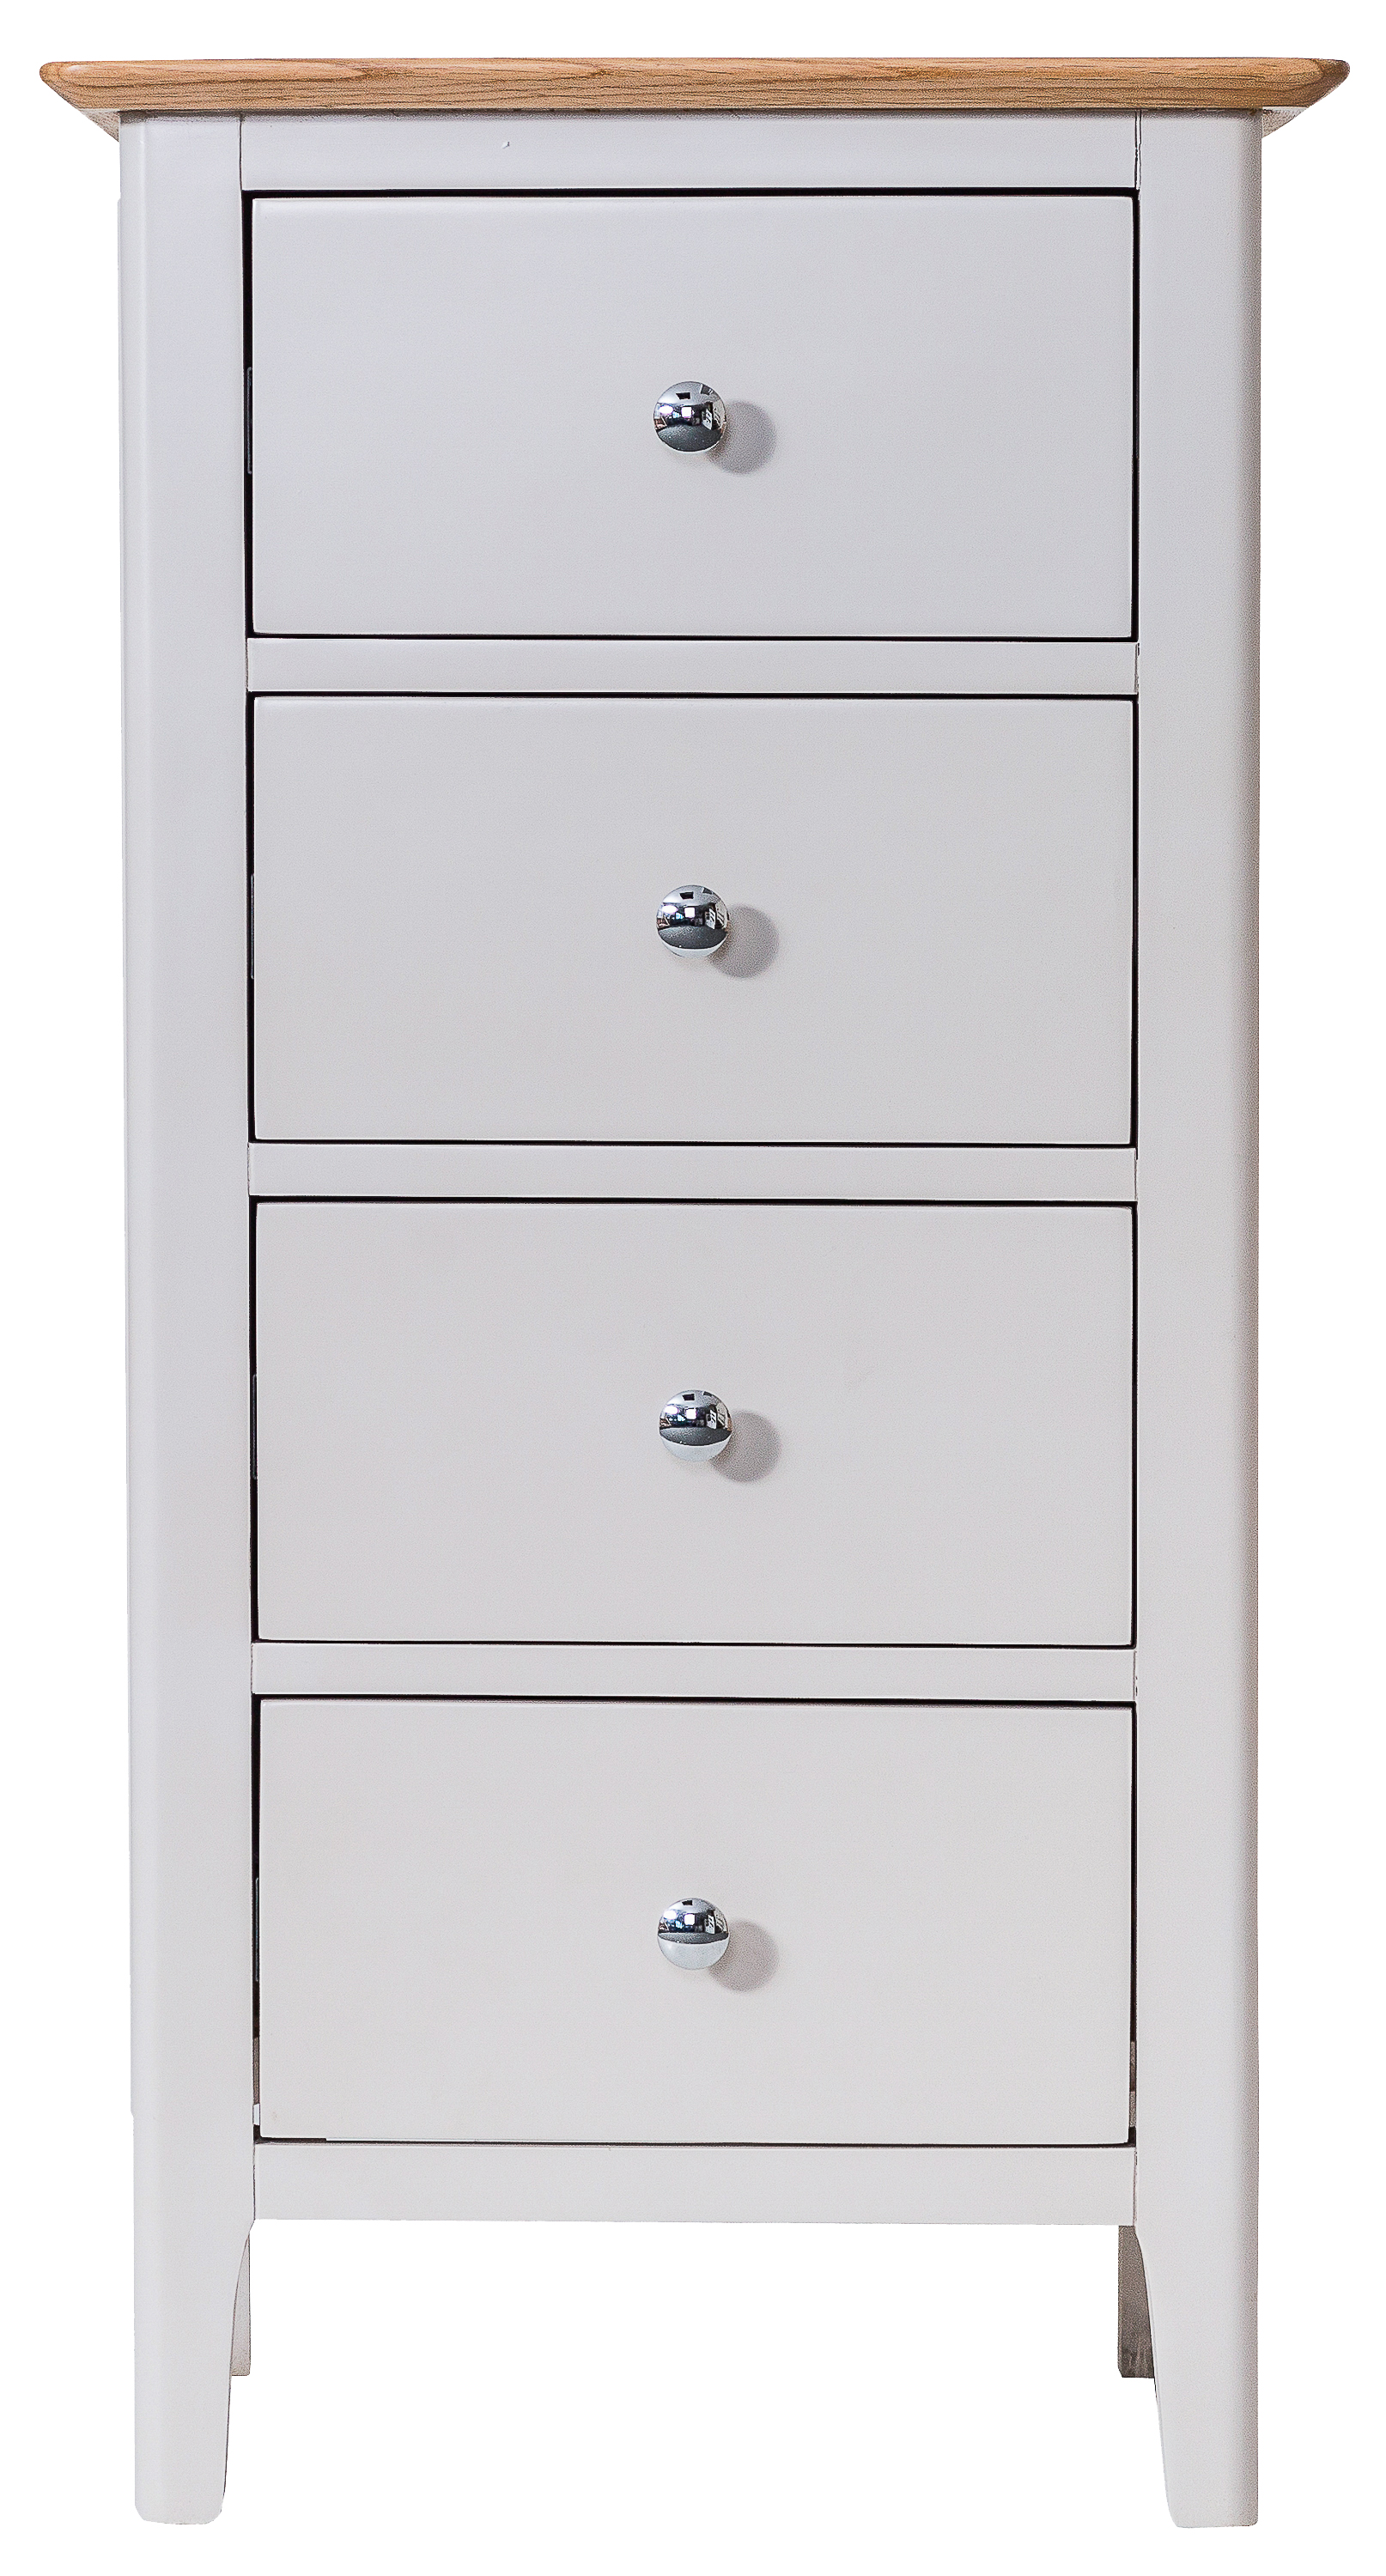 Oisin Narrow 4 Drawer Chest of Drawers